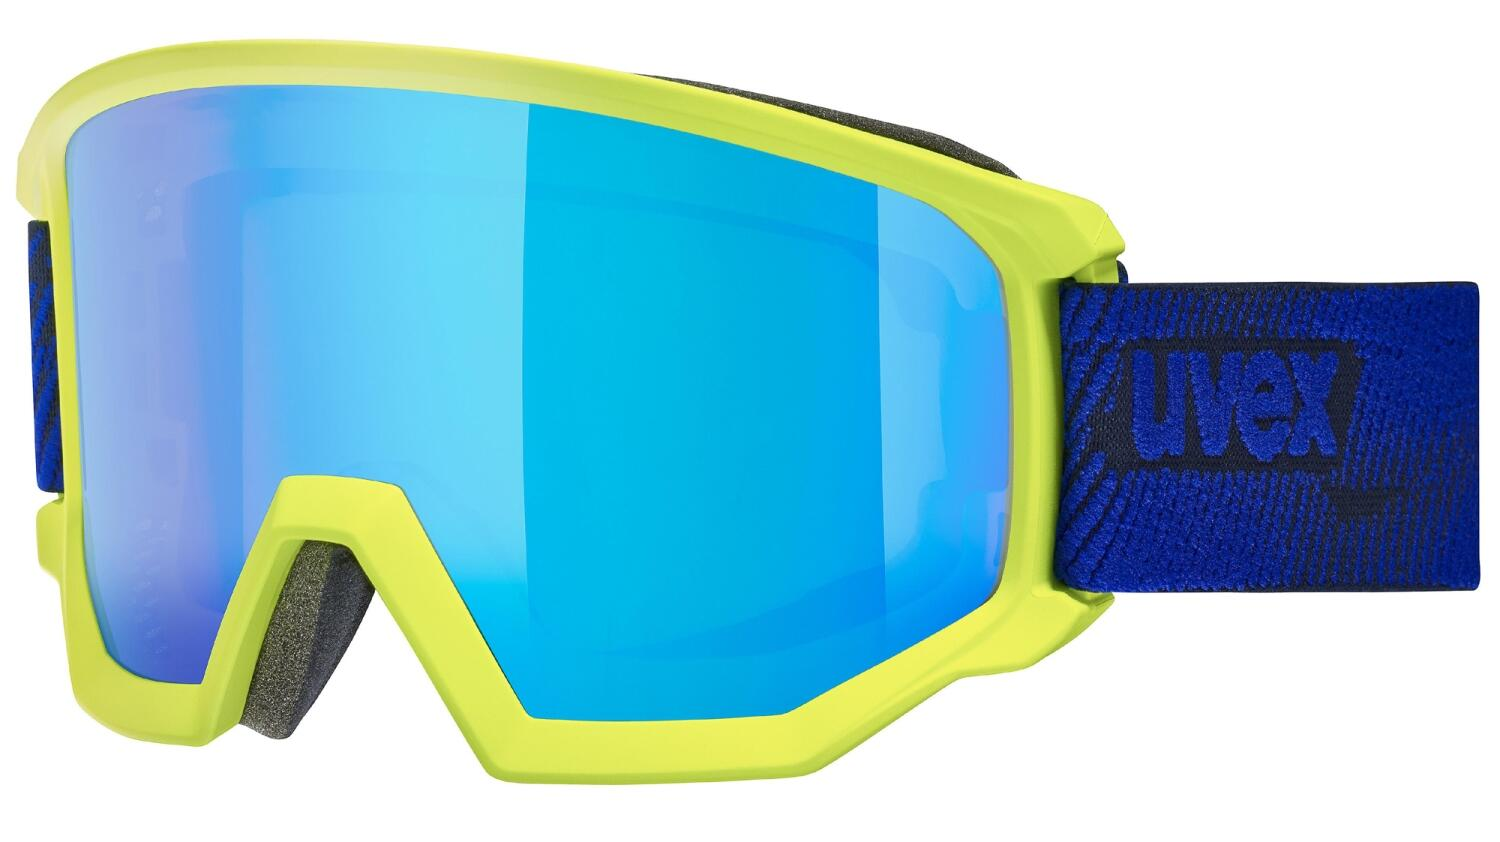 uvex-athletic-cv-skibrille-brillentr-auml-ger-farbe-7030-lime-mat-mirror-blue-colorvision-green-